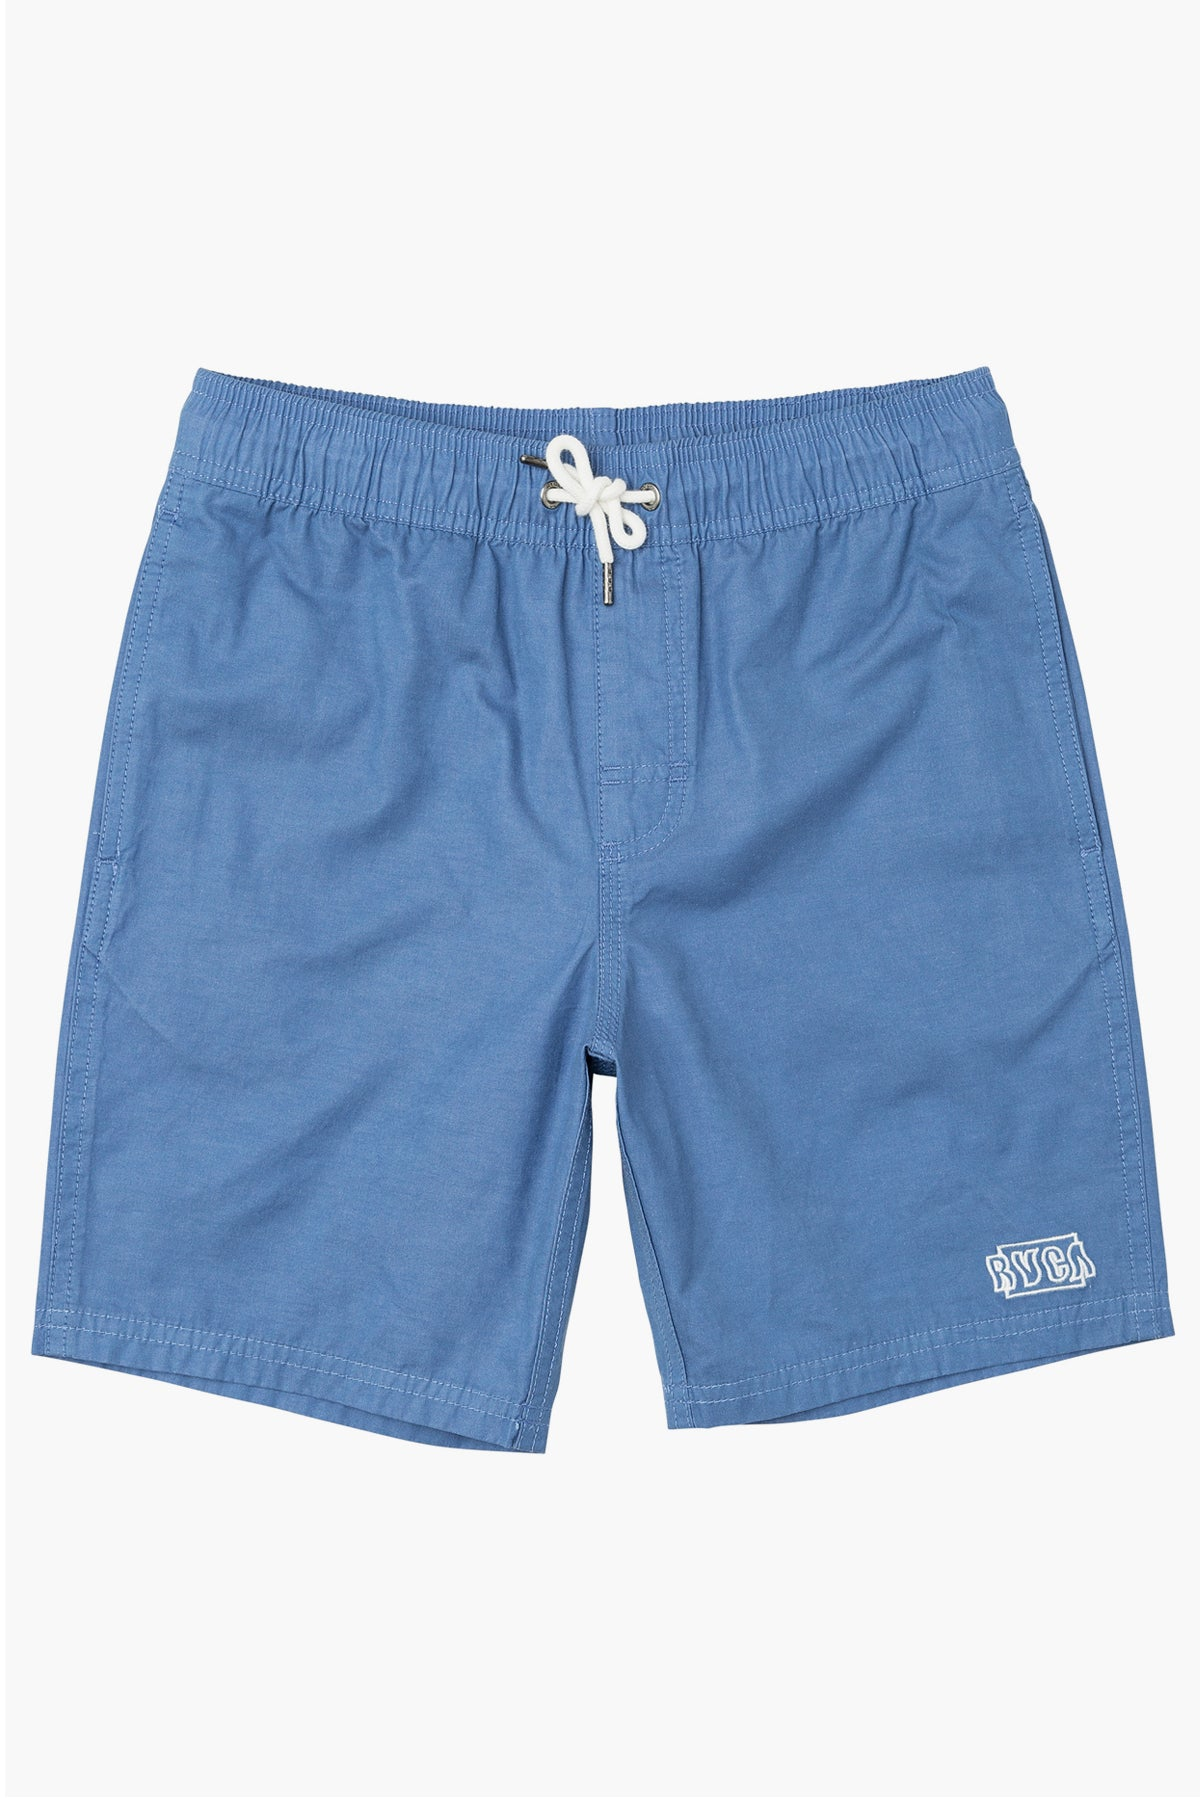 RVCA Opposites Boys Swim Short - Nautical Blue